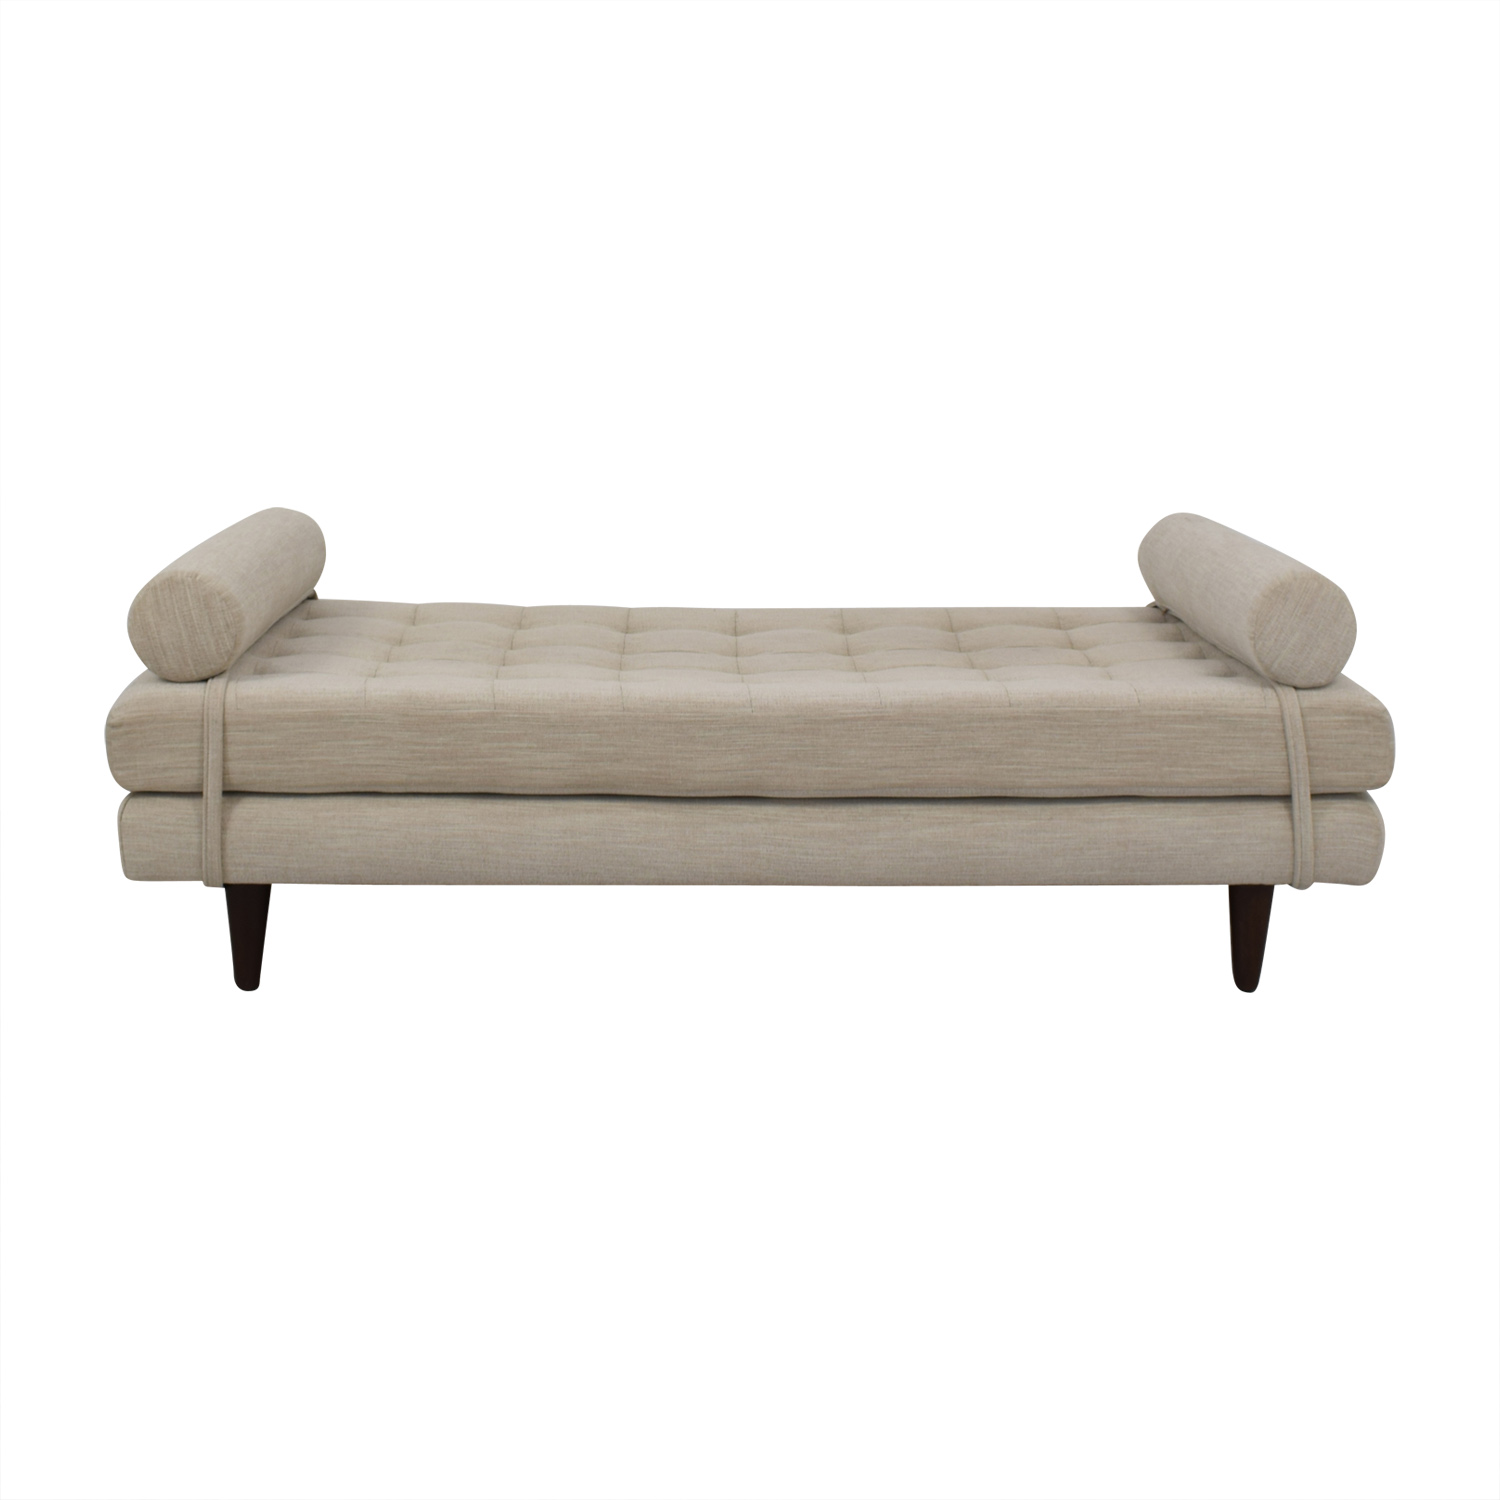 Joybird Joybird Eliot Daybed for sale